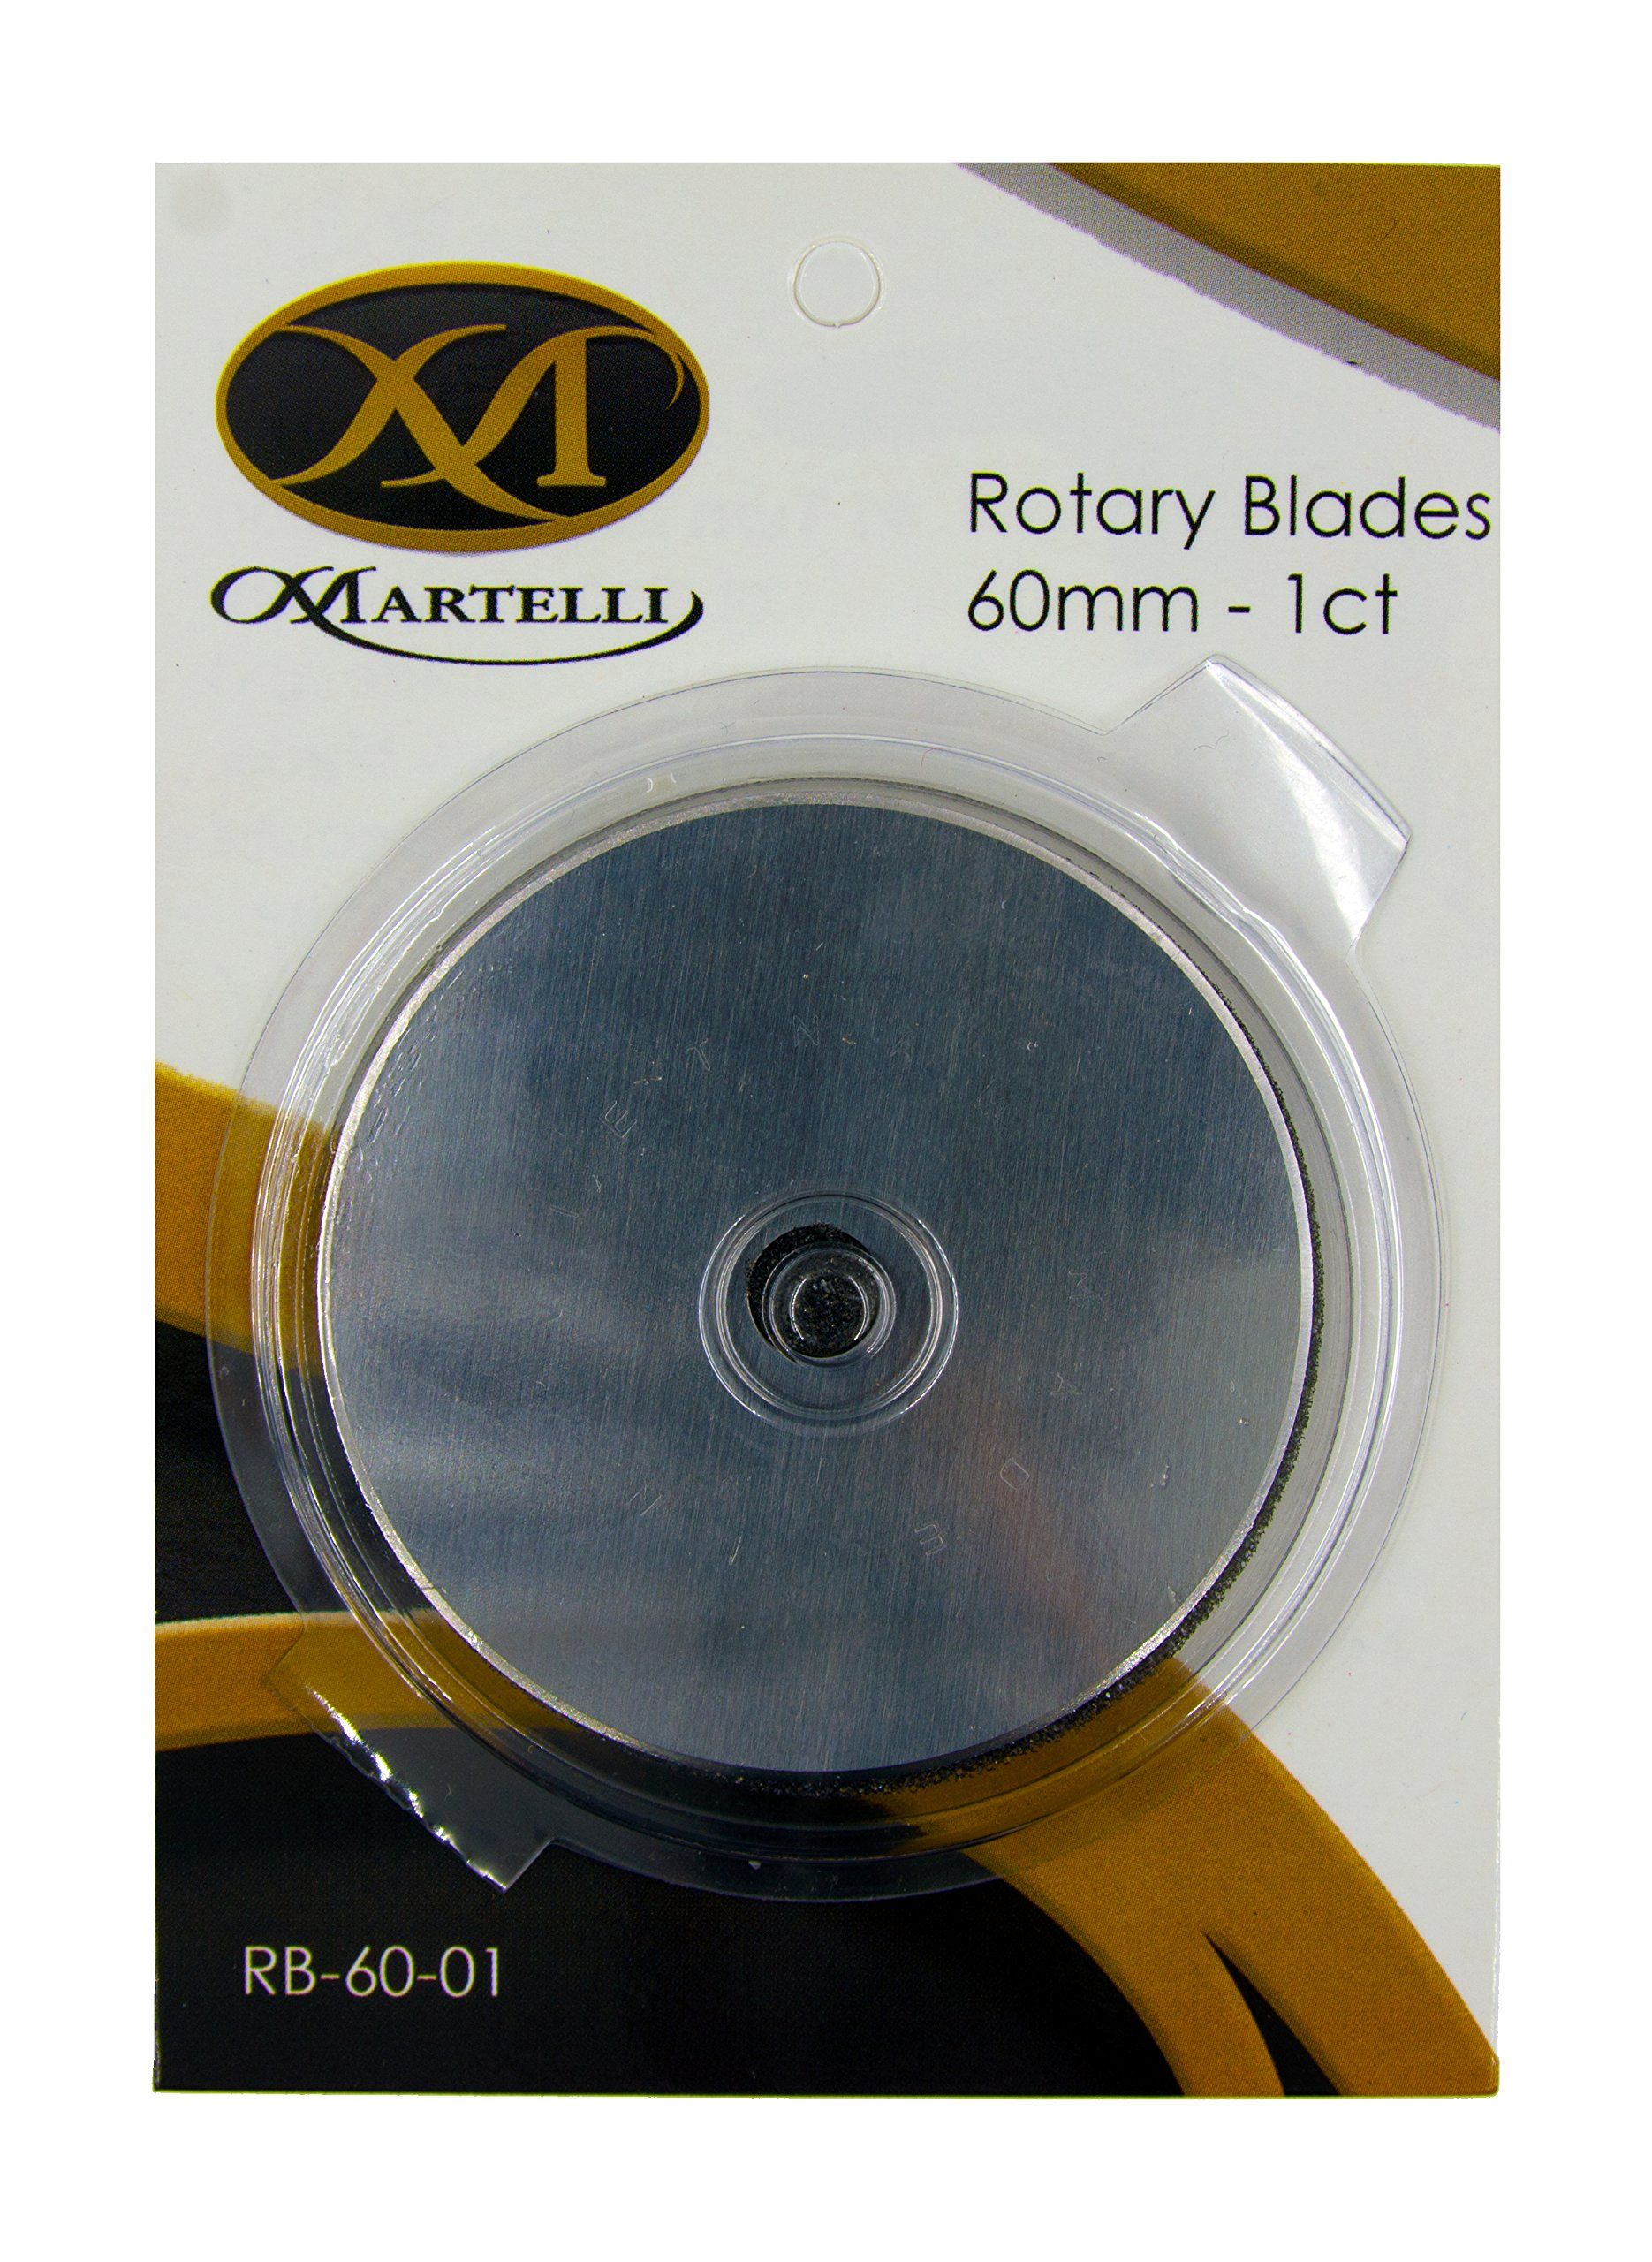 Martelli Bulk Buy Ergo 2000 Rotary Cutter 60mm Replacement Blade 1 Pack EC025 (3-Pack) by Martelli